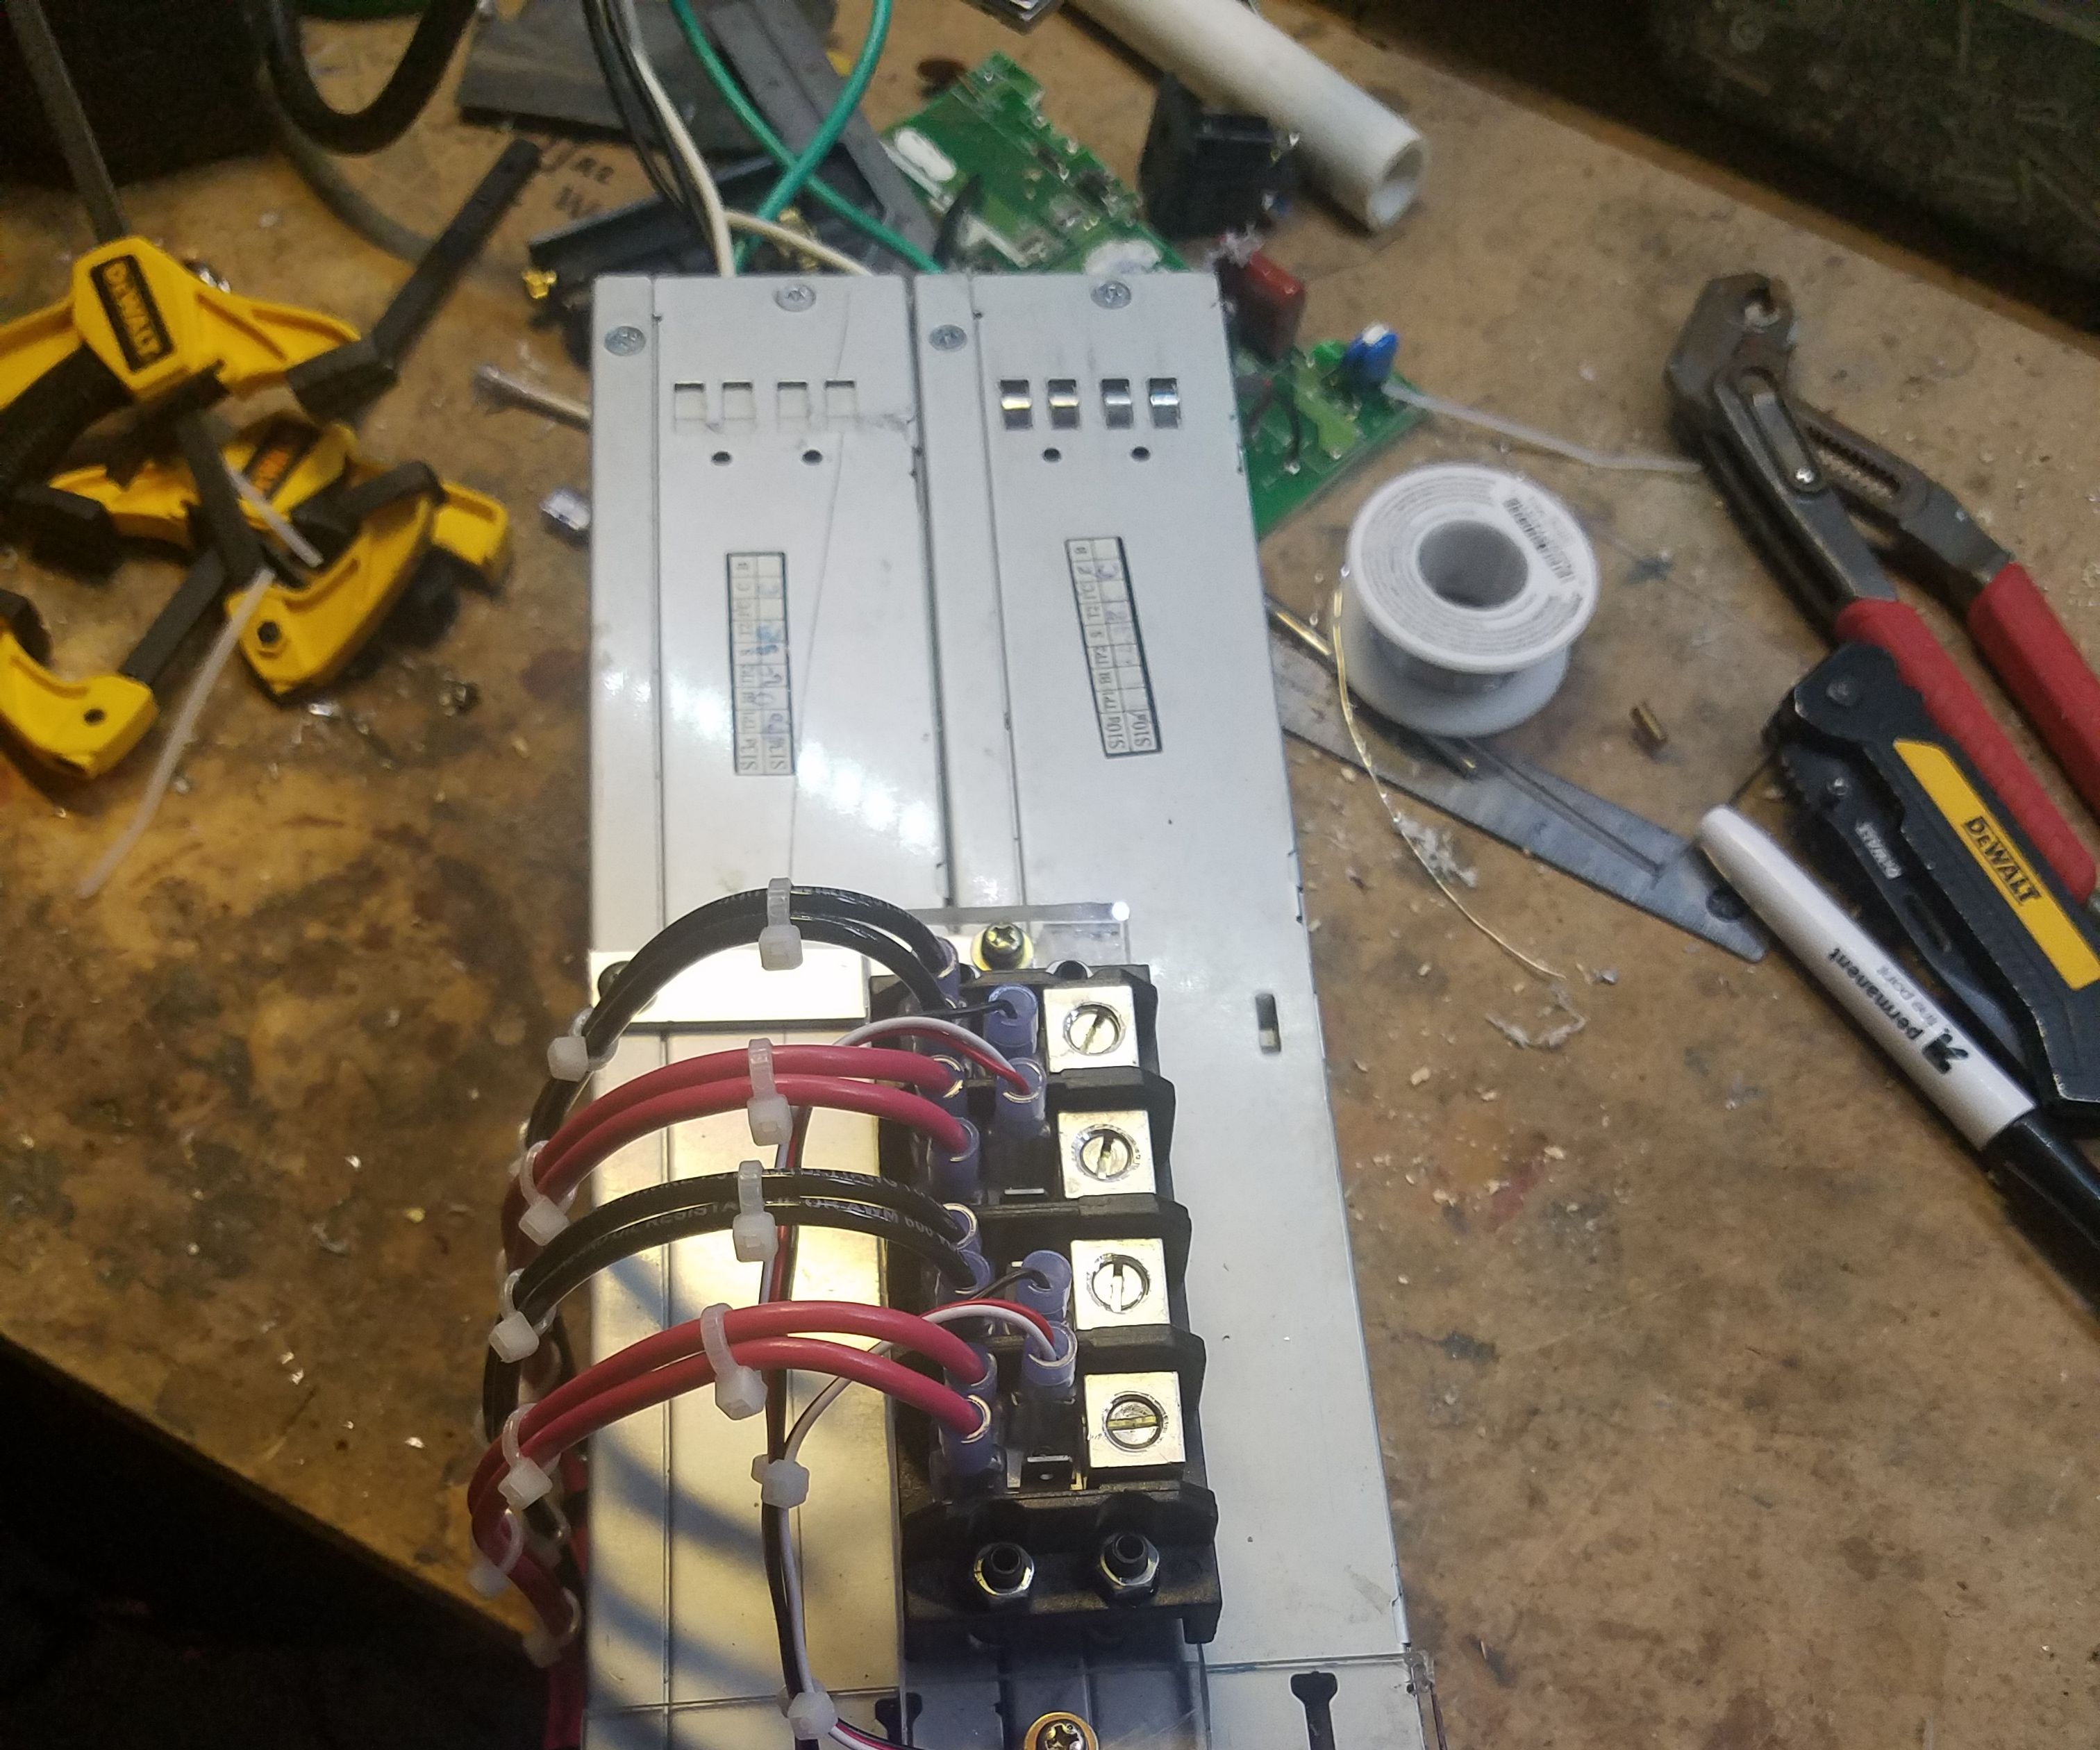 1200W 12/24V DC Power Supply for Cheap: 5 Steps (with Pictures)